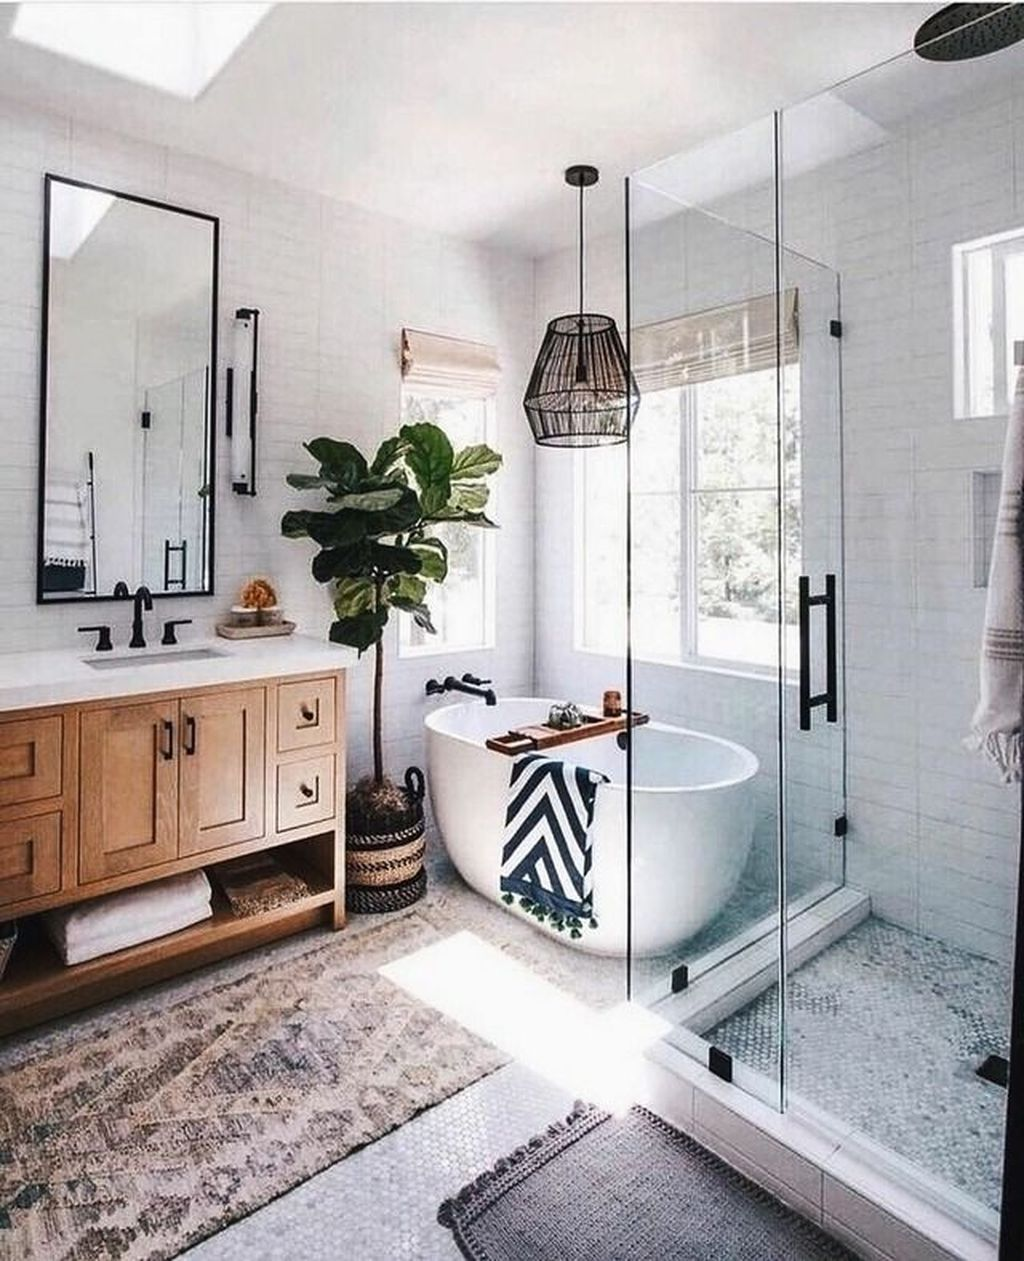 20 Stunning Boho Bathroom Design Ideas That You Must Try ...